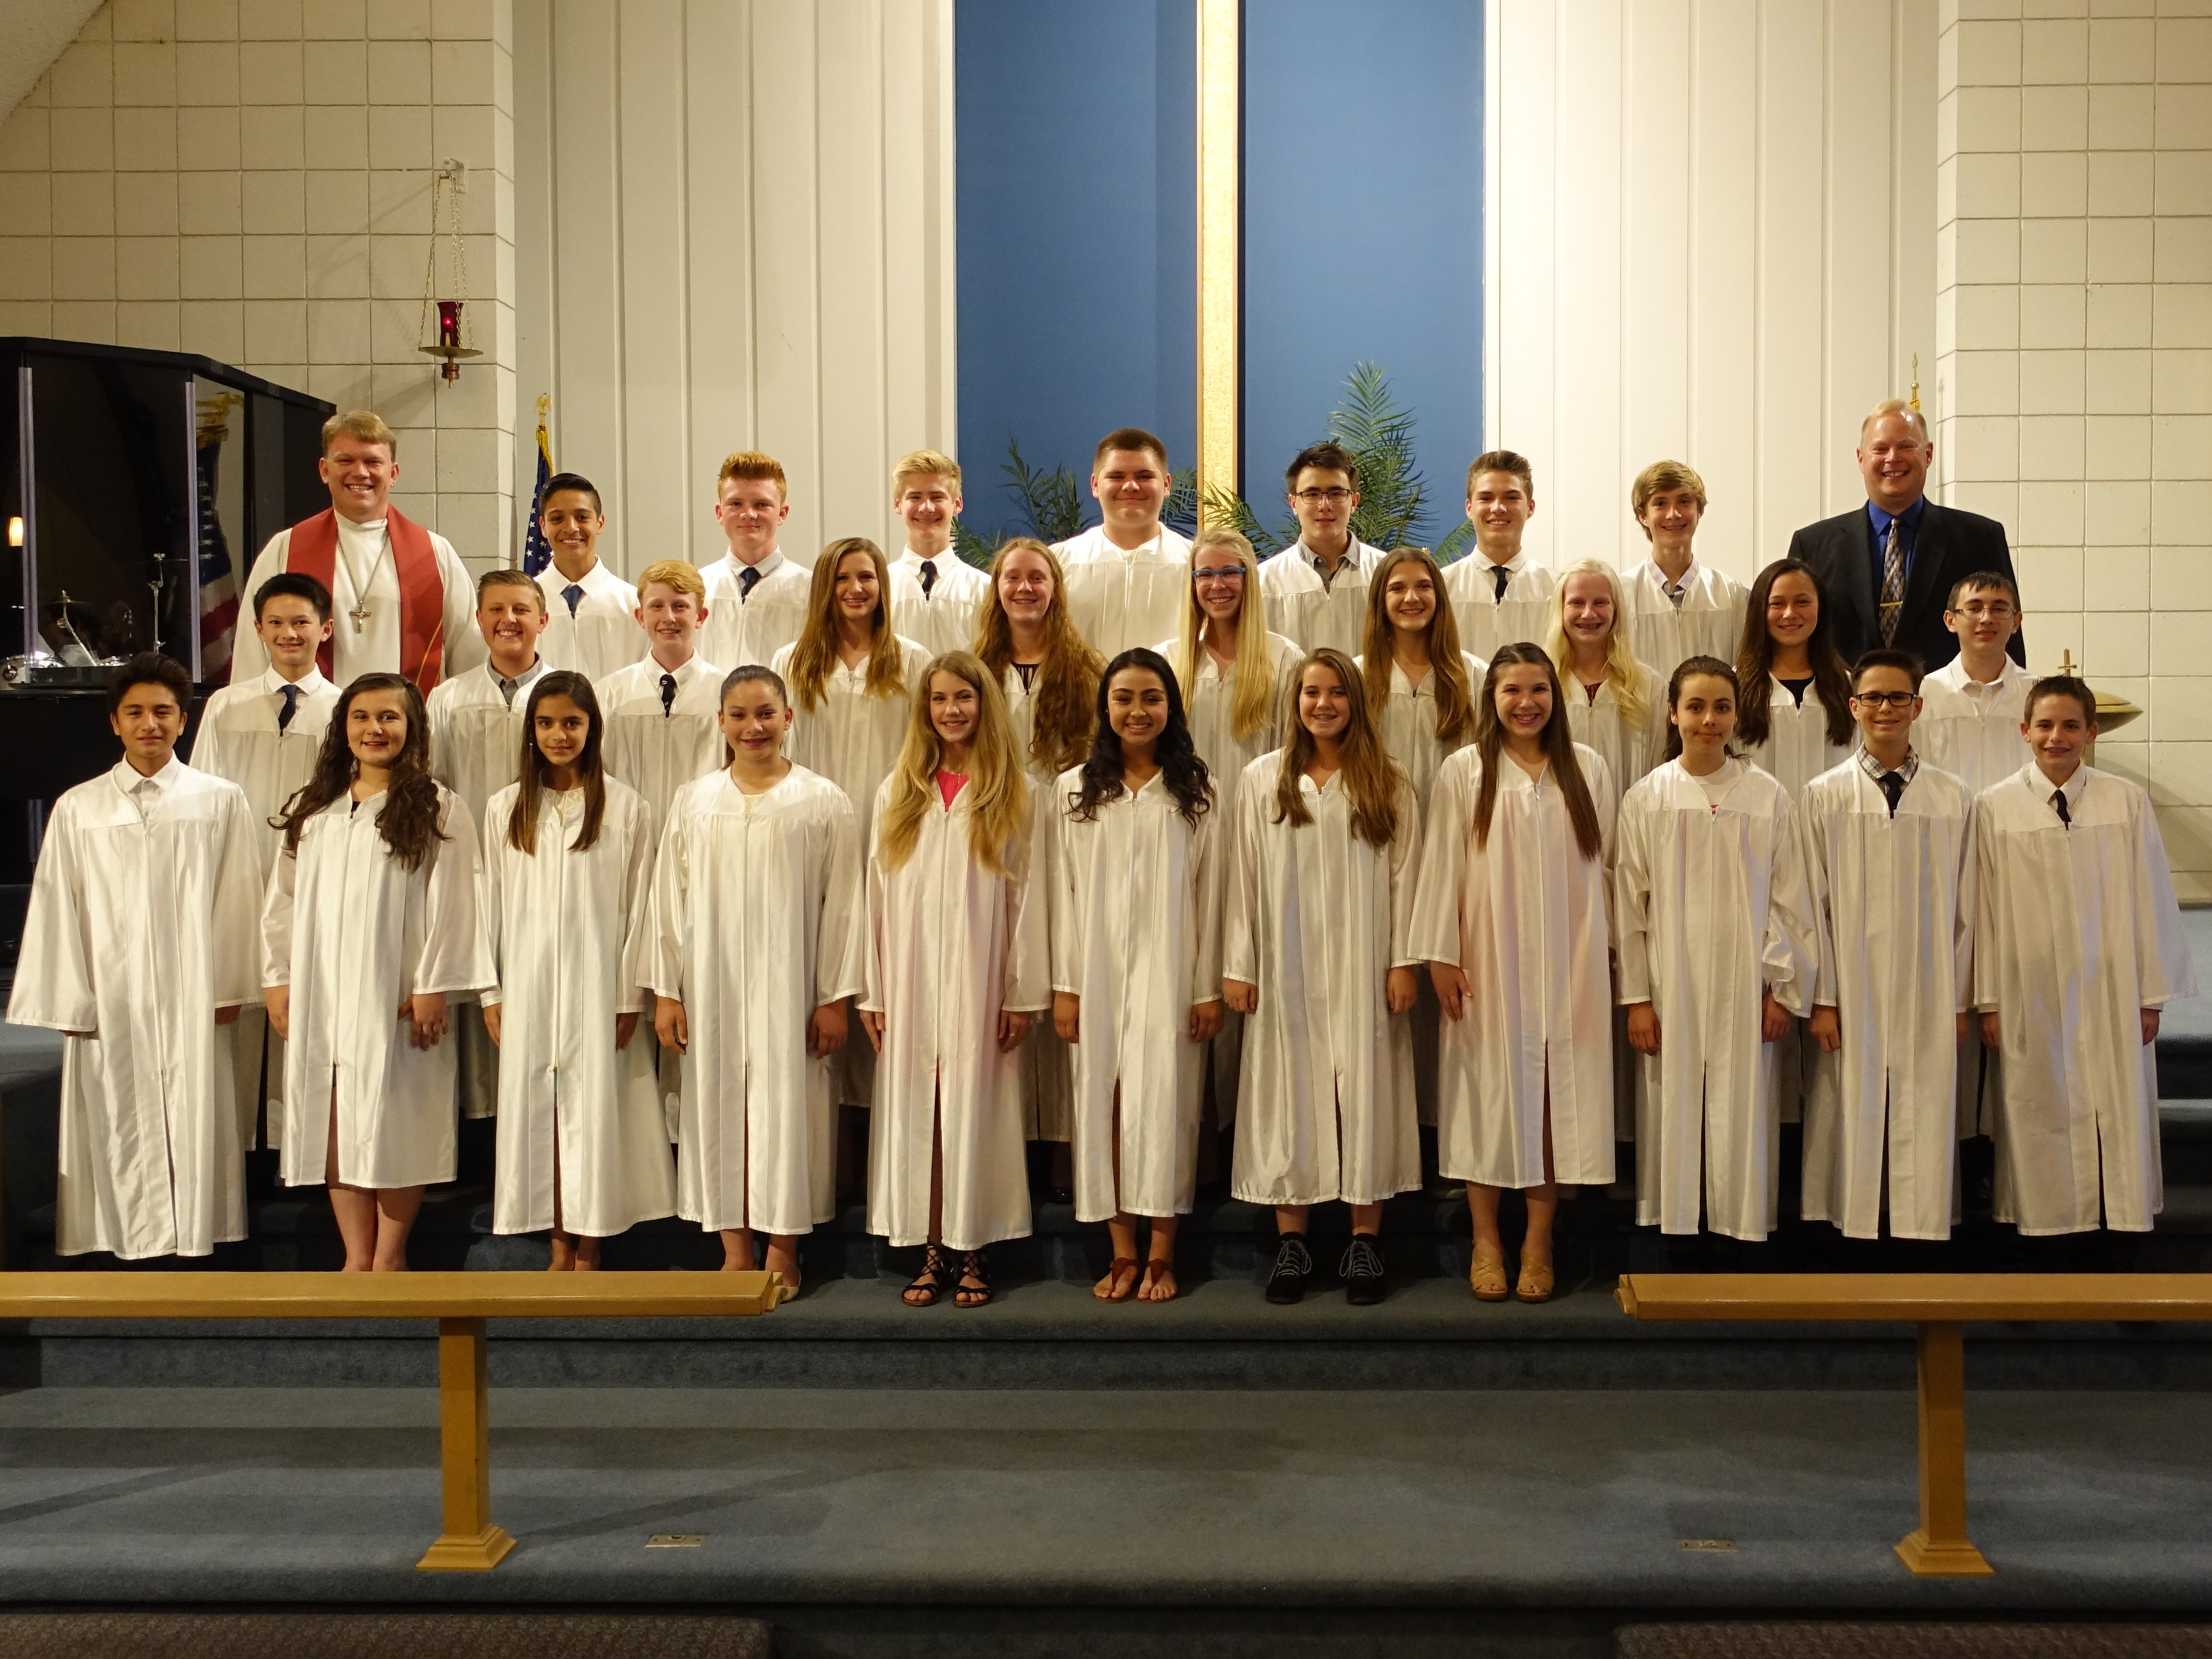 2016 Confirmation Group Photo